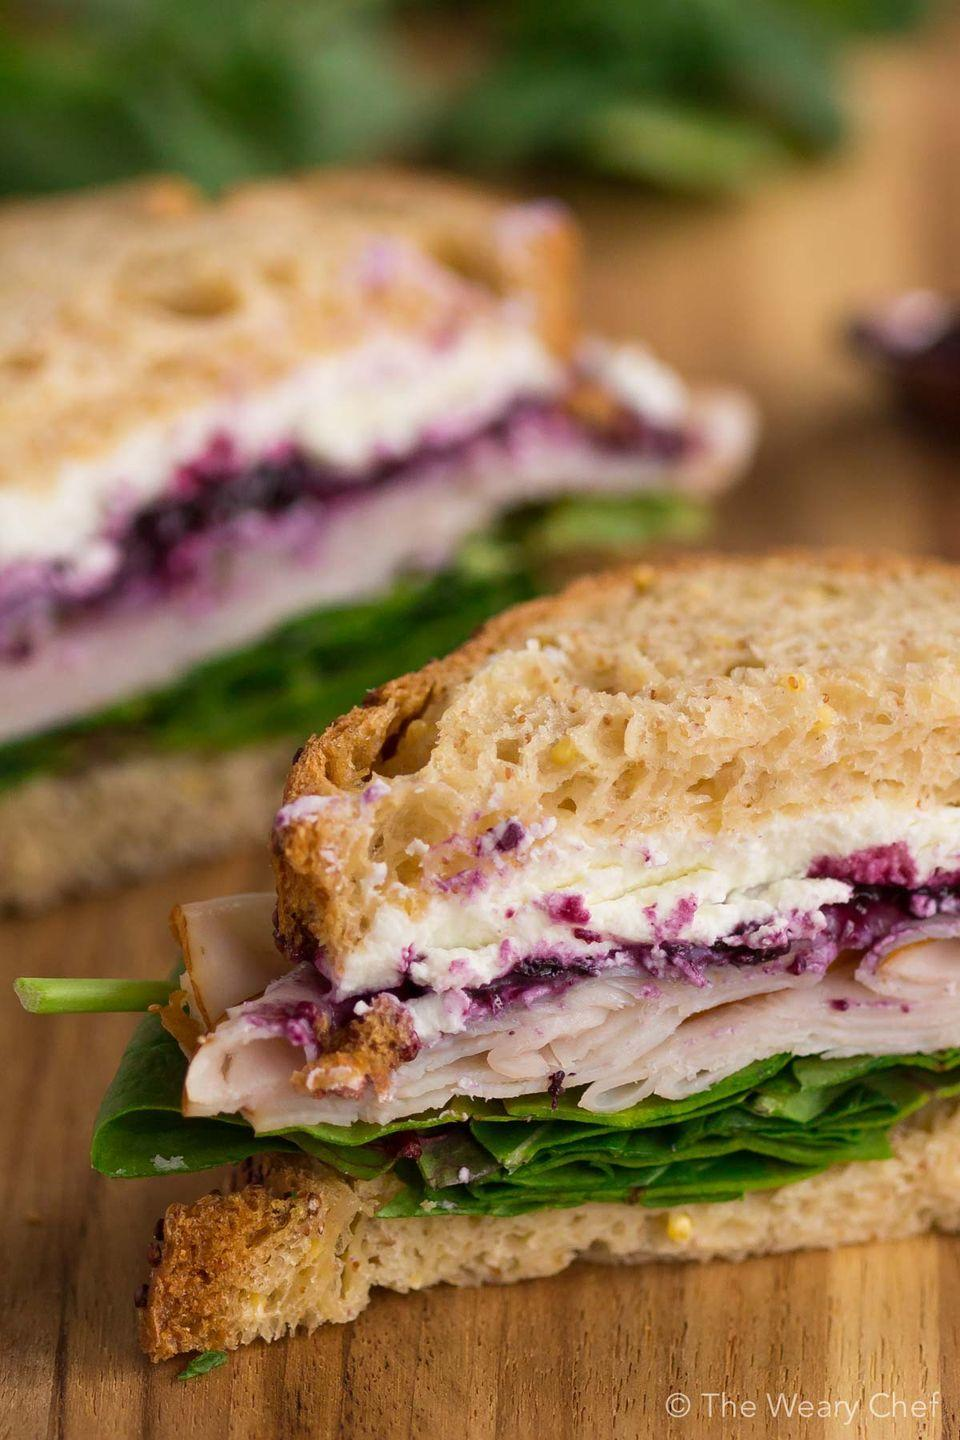 "<p><strong>Huckleberry Sandwich</strong></p><p>Idaho isn't just known for their potatoes -- but huckleberries too. It's an instrumental ingredient at <a href=""https://www.trilliumboise.com/"" rel=""nofollow noopener"" target=""_blank"" data-ylk=""slk:Trillium"" class=""link rapid-noclick-resp"">Trillium</a> in Boise -- made into a delicious barbecue sauce slathered on a roasted turkey & brie sandwich. </p>"